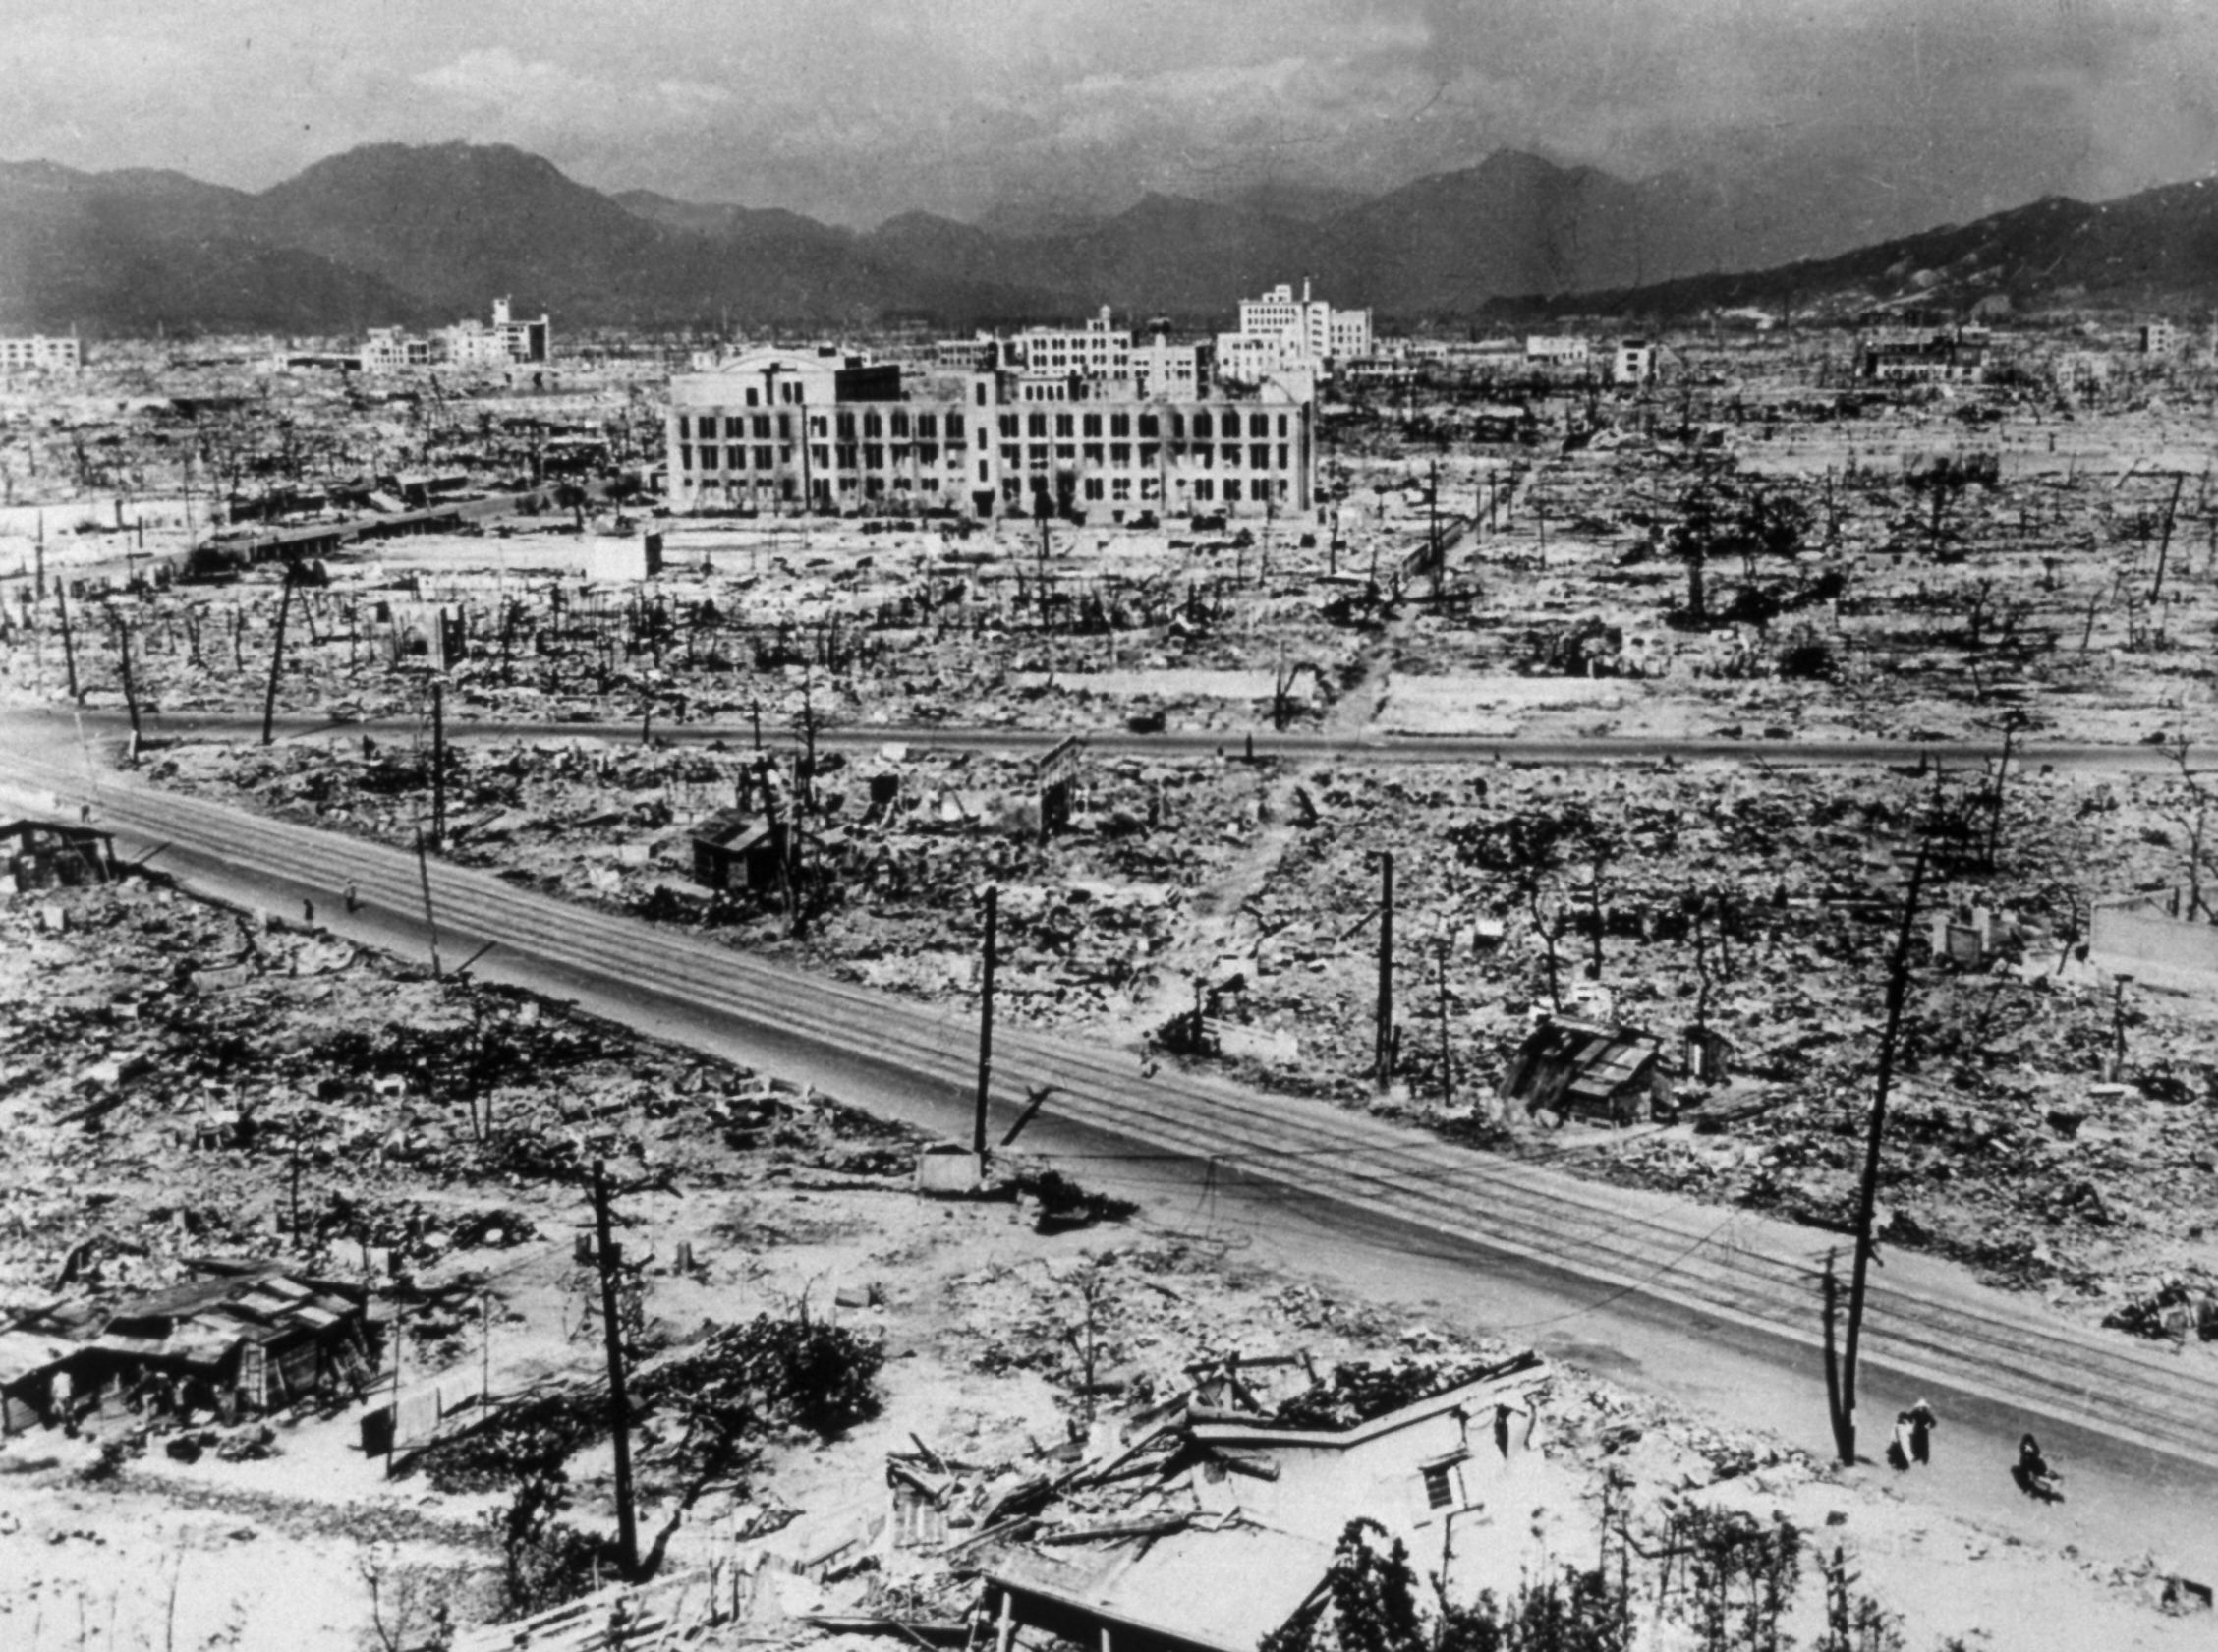 "Atomic bomb damage in the city of Hiroshima, 1945. The atomic bomb dropped on Hiroshima on 6 August 1945 ""razed and burnt around 70 per cent of all buildings"", according to the International Campaign to Abolish Nuclear Weapons. (Photo by Hulton Archive/Getty Images)"